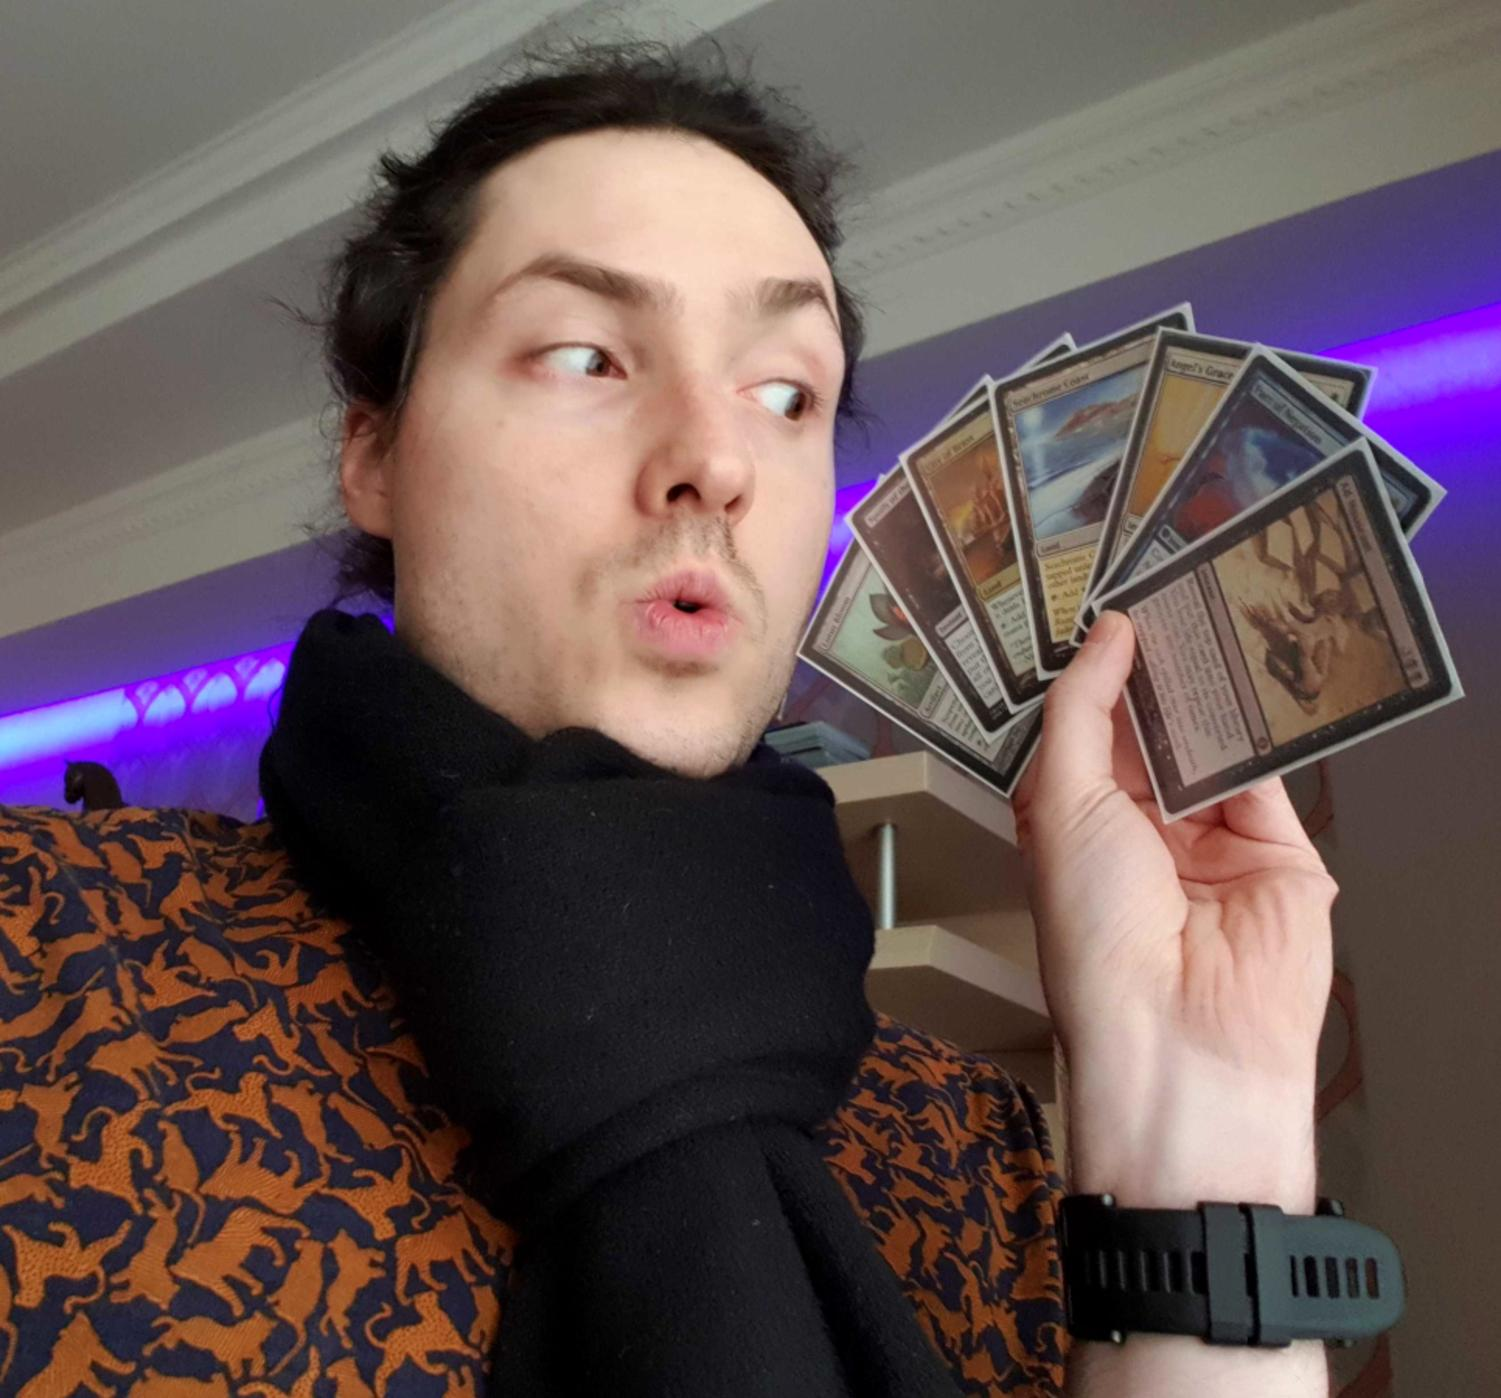 Jonn and his MTG cards